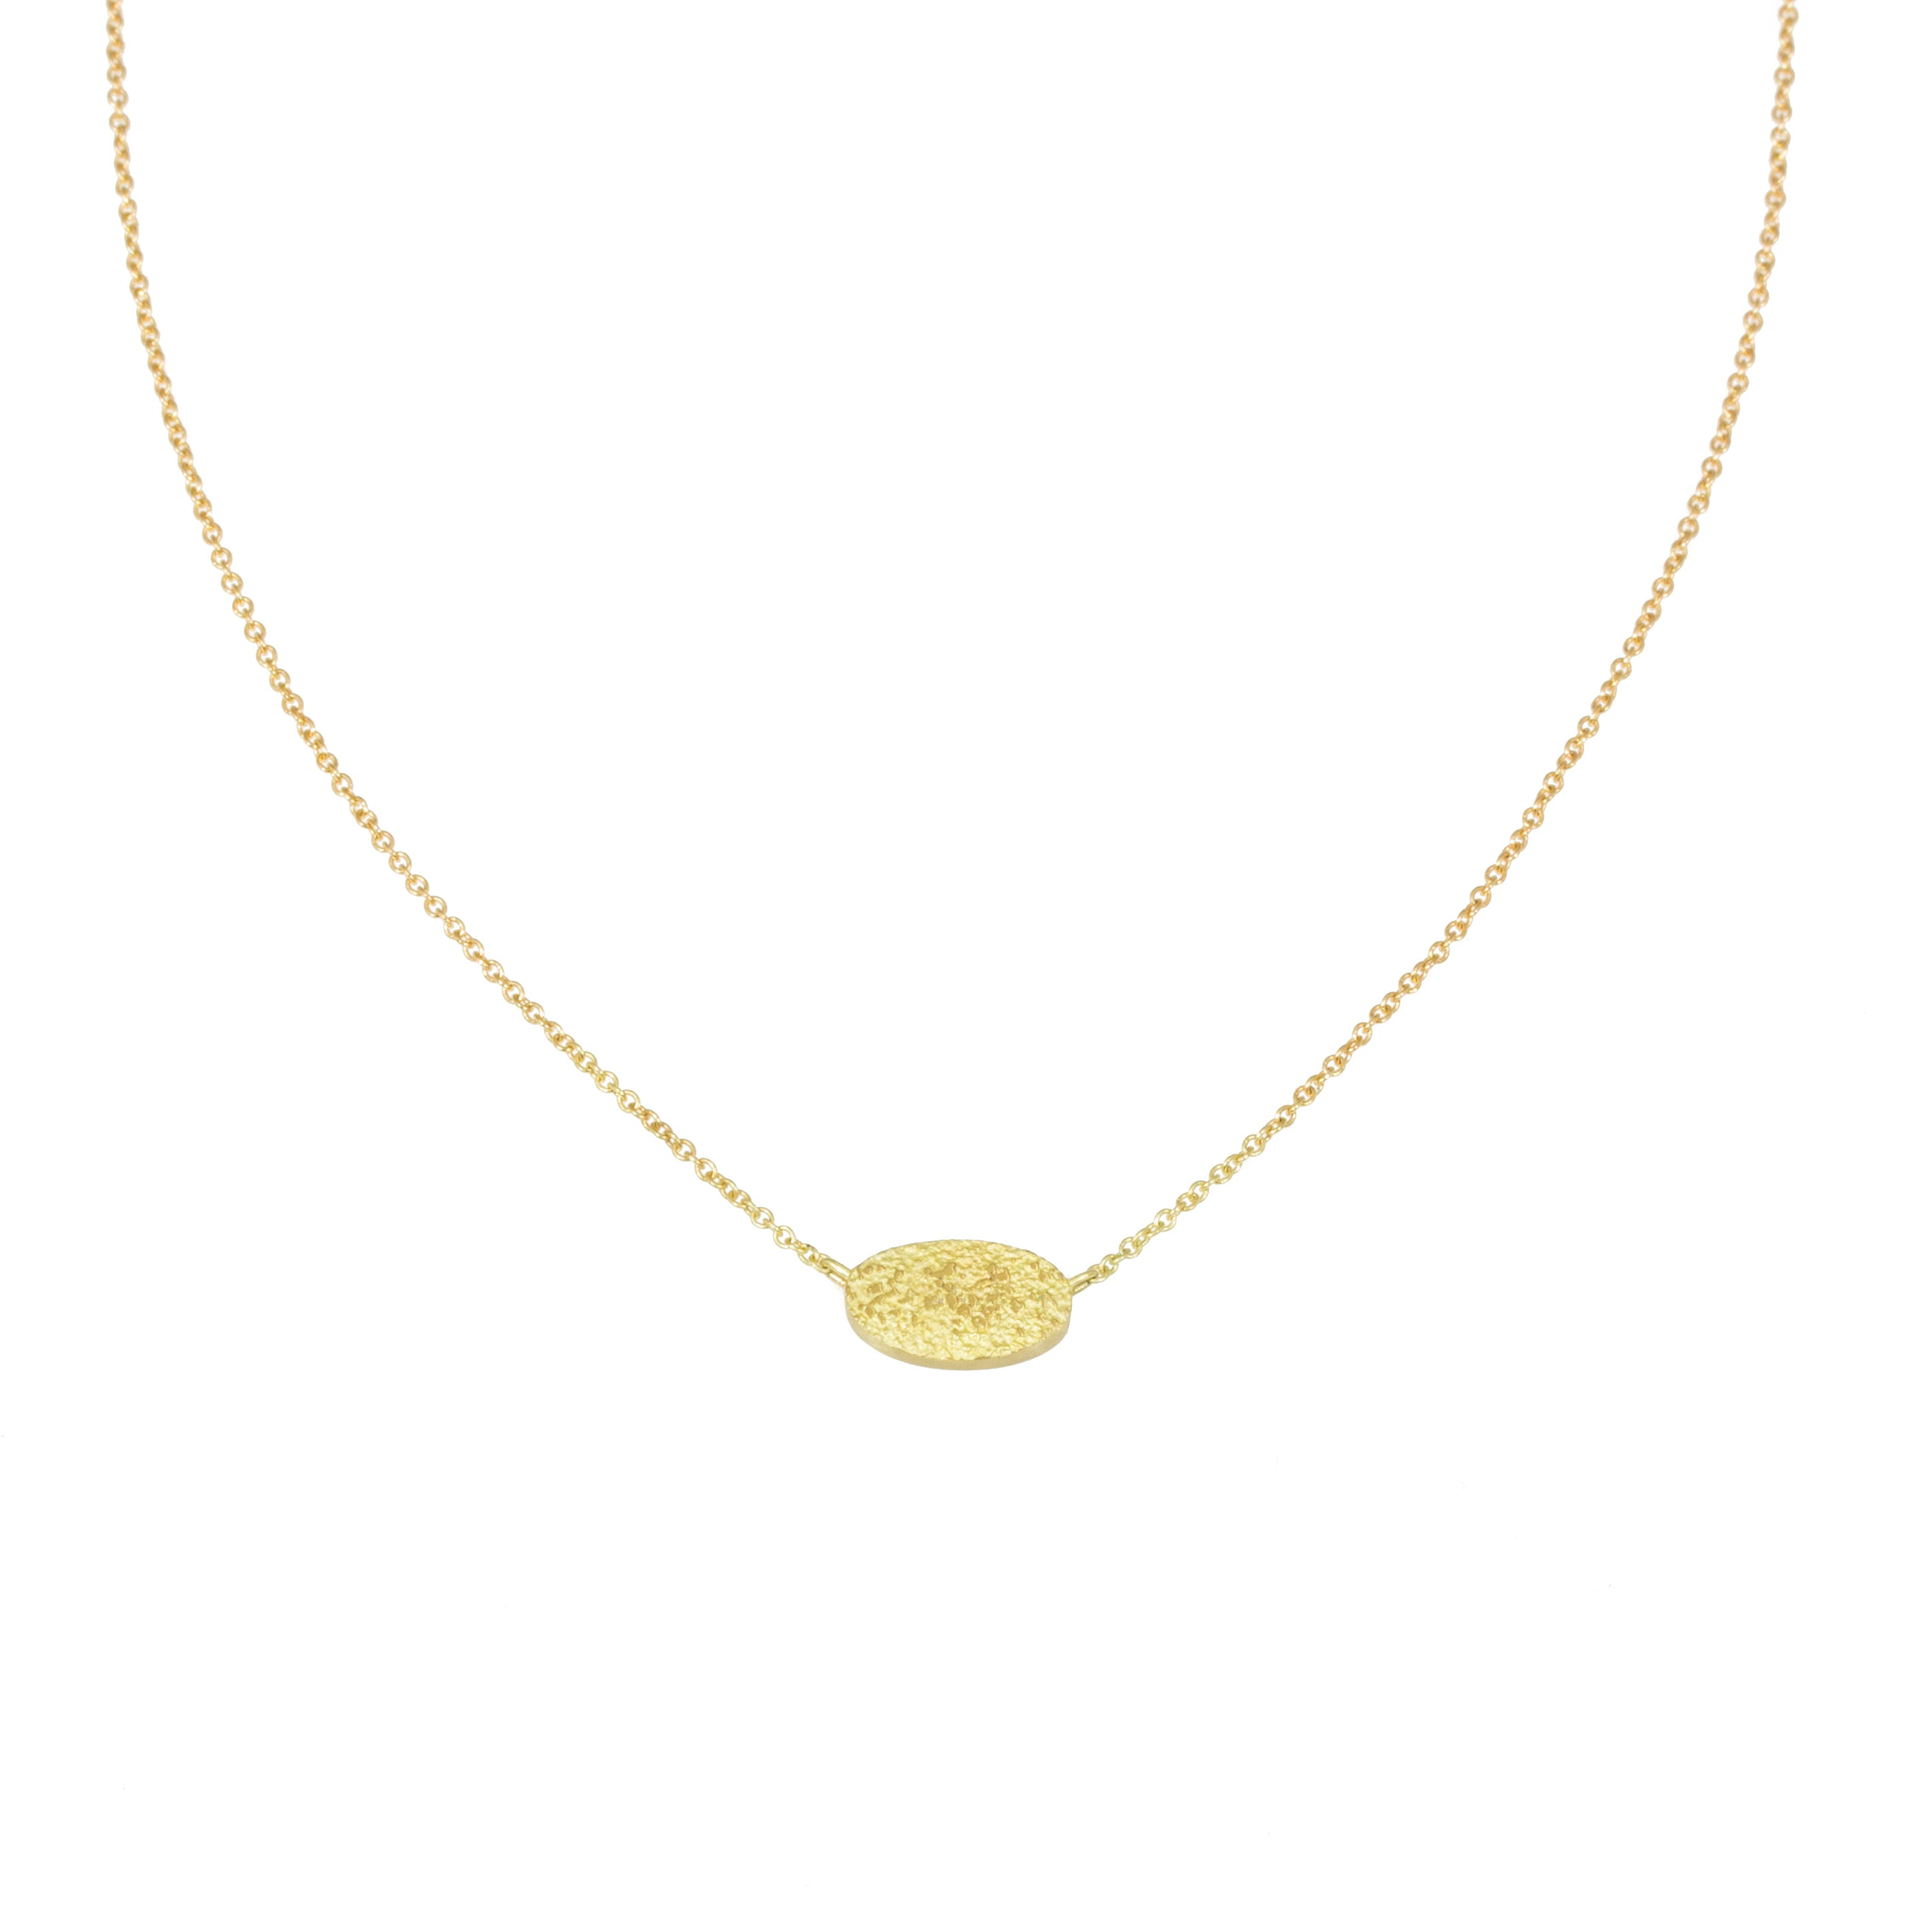 Sand Oval Necklace in 18k Yellow Gold